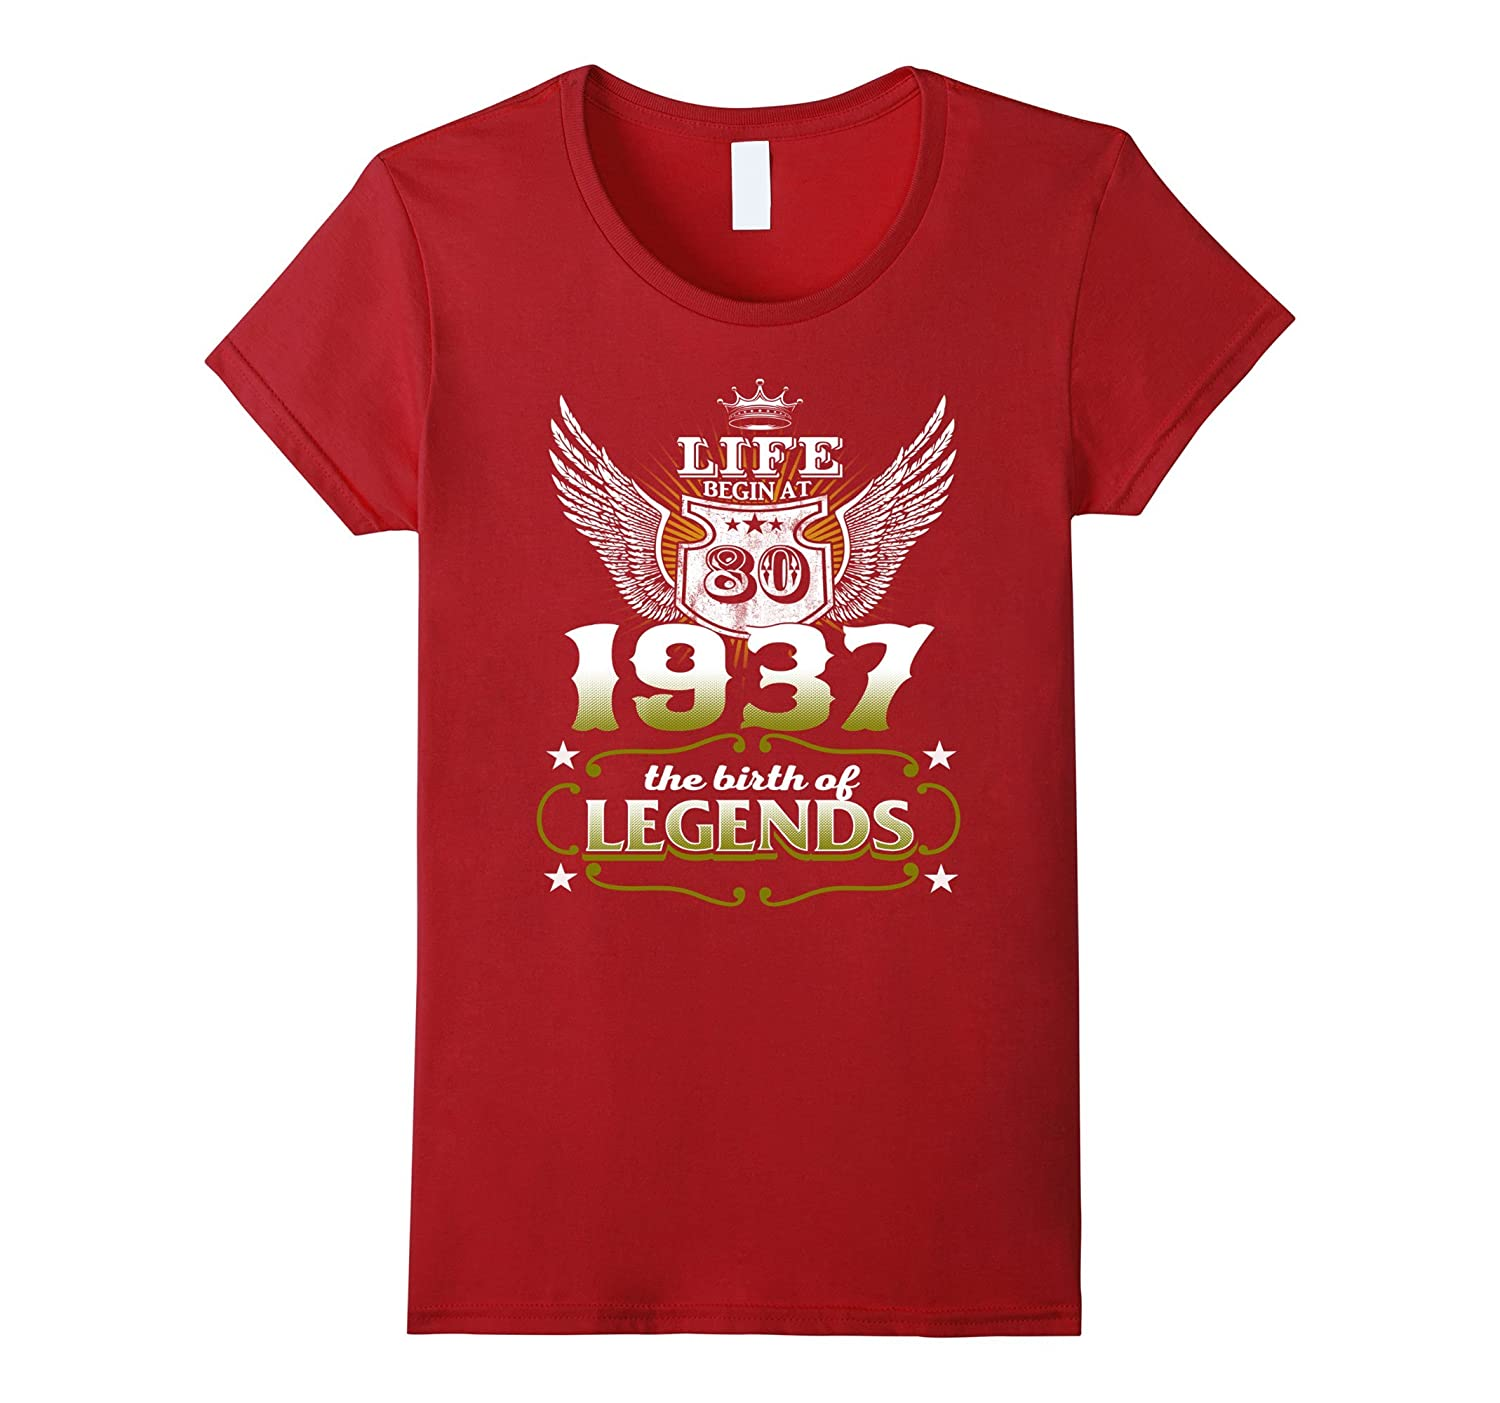 80th Birthday T-Shirt Made in 1937 Life Begins